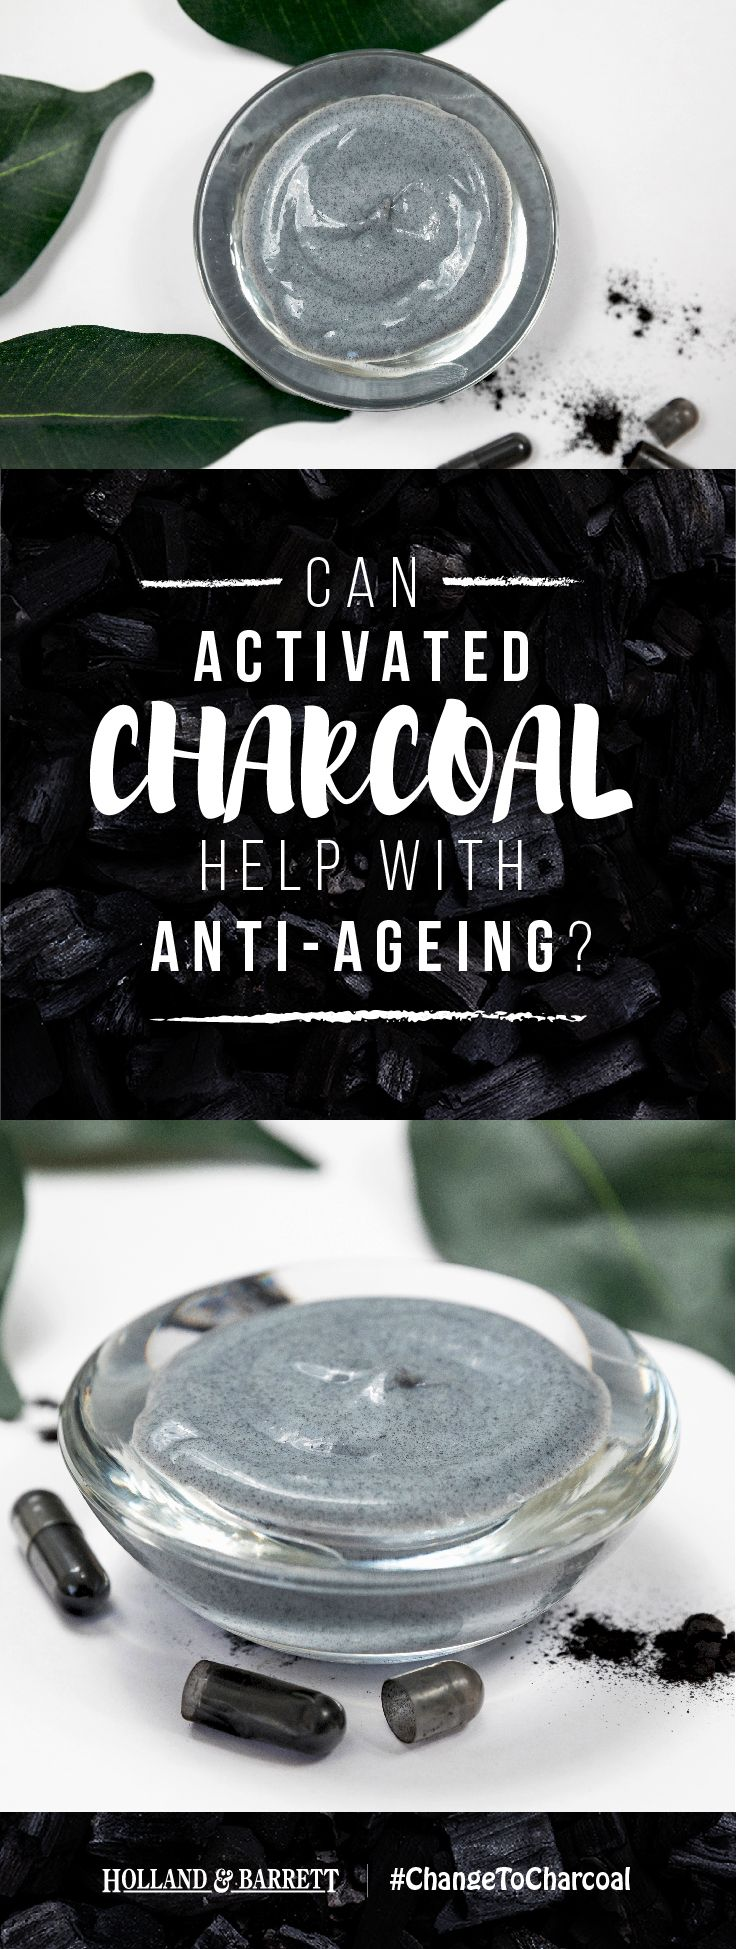 Keeping your skin looking great with age can sometimes be tricky. With its anti-ageing effects, activated charcoal could be the new secret ingredient in your beauty bag that'll help keep your skin looking radiant. #ChangeToCharcoal